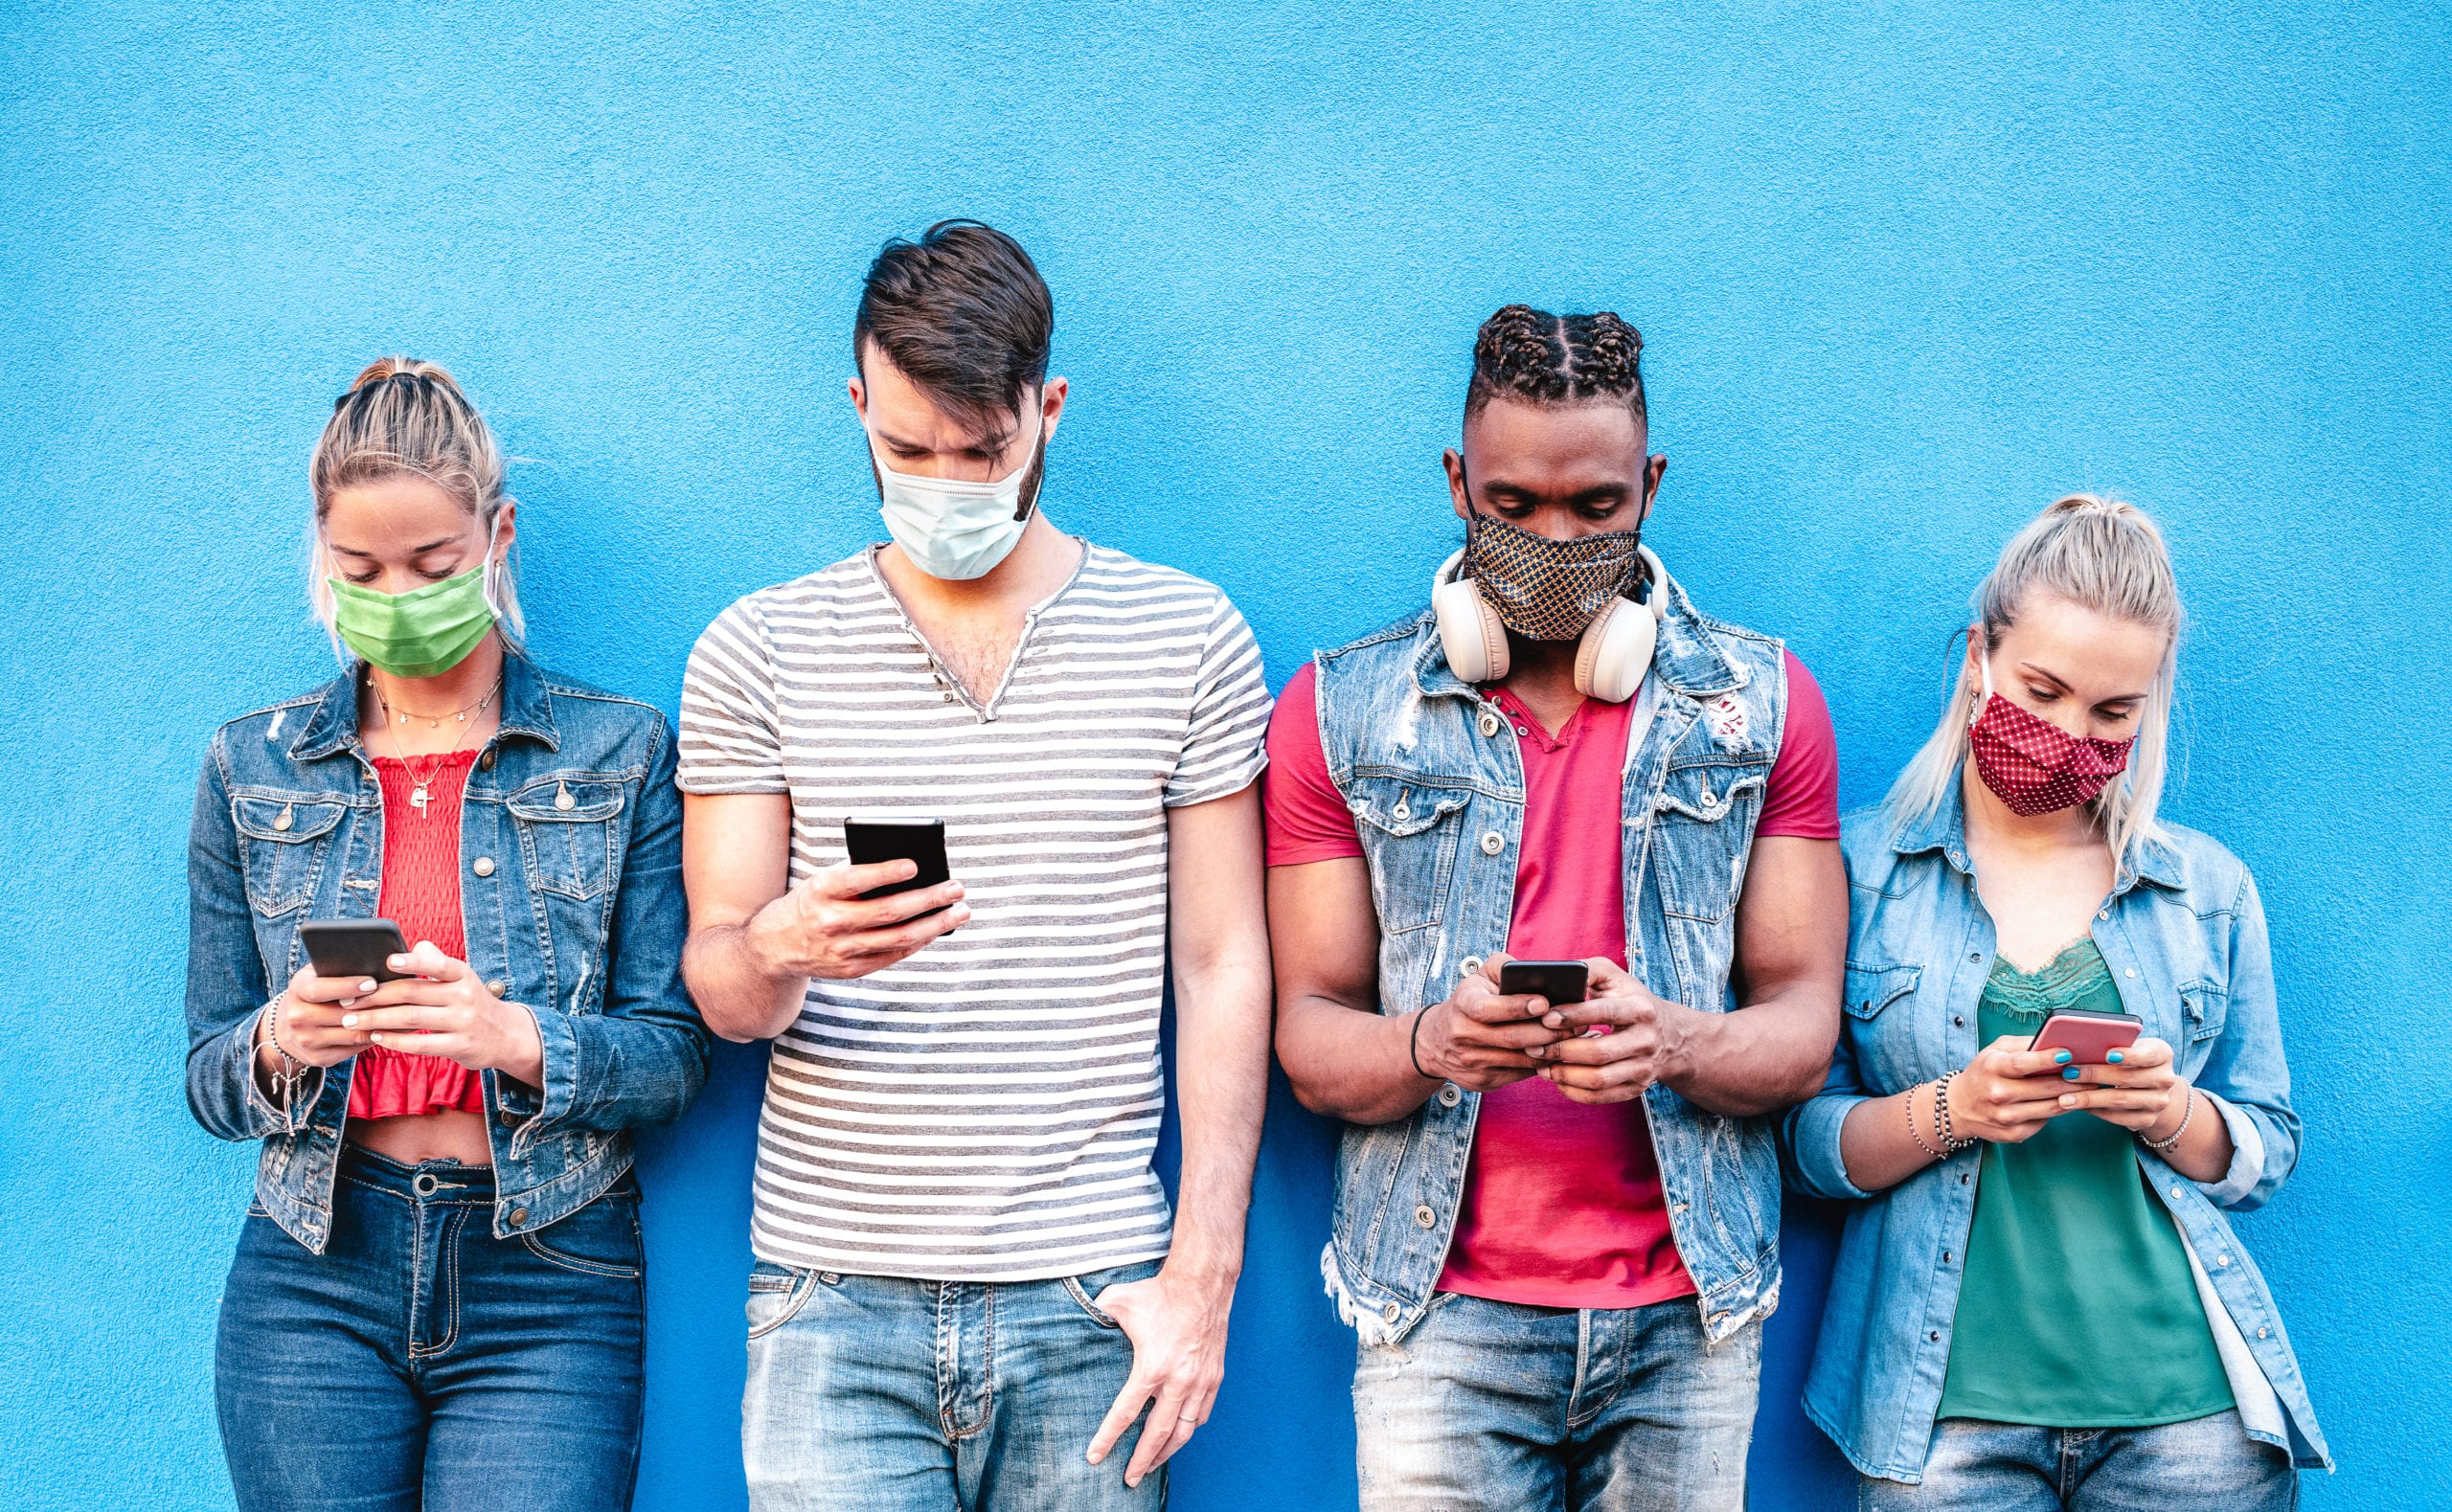 Gen Z people engaging with a Mobilize community on their phones in masks